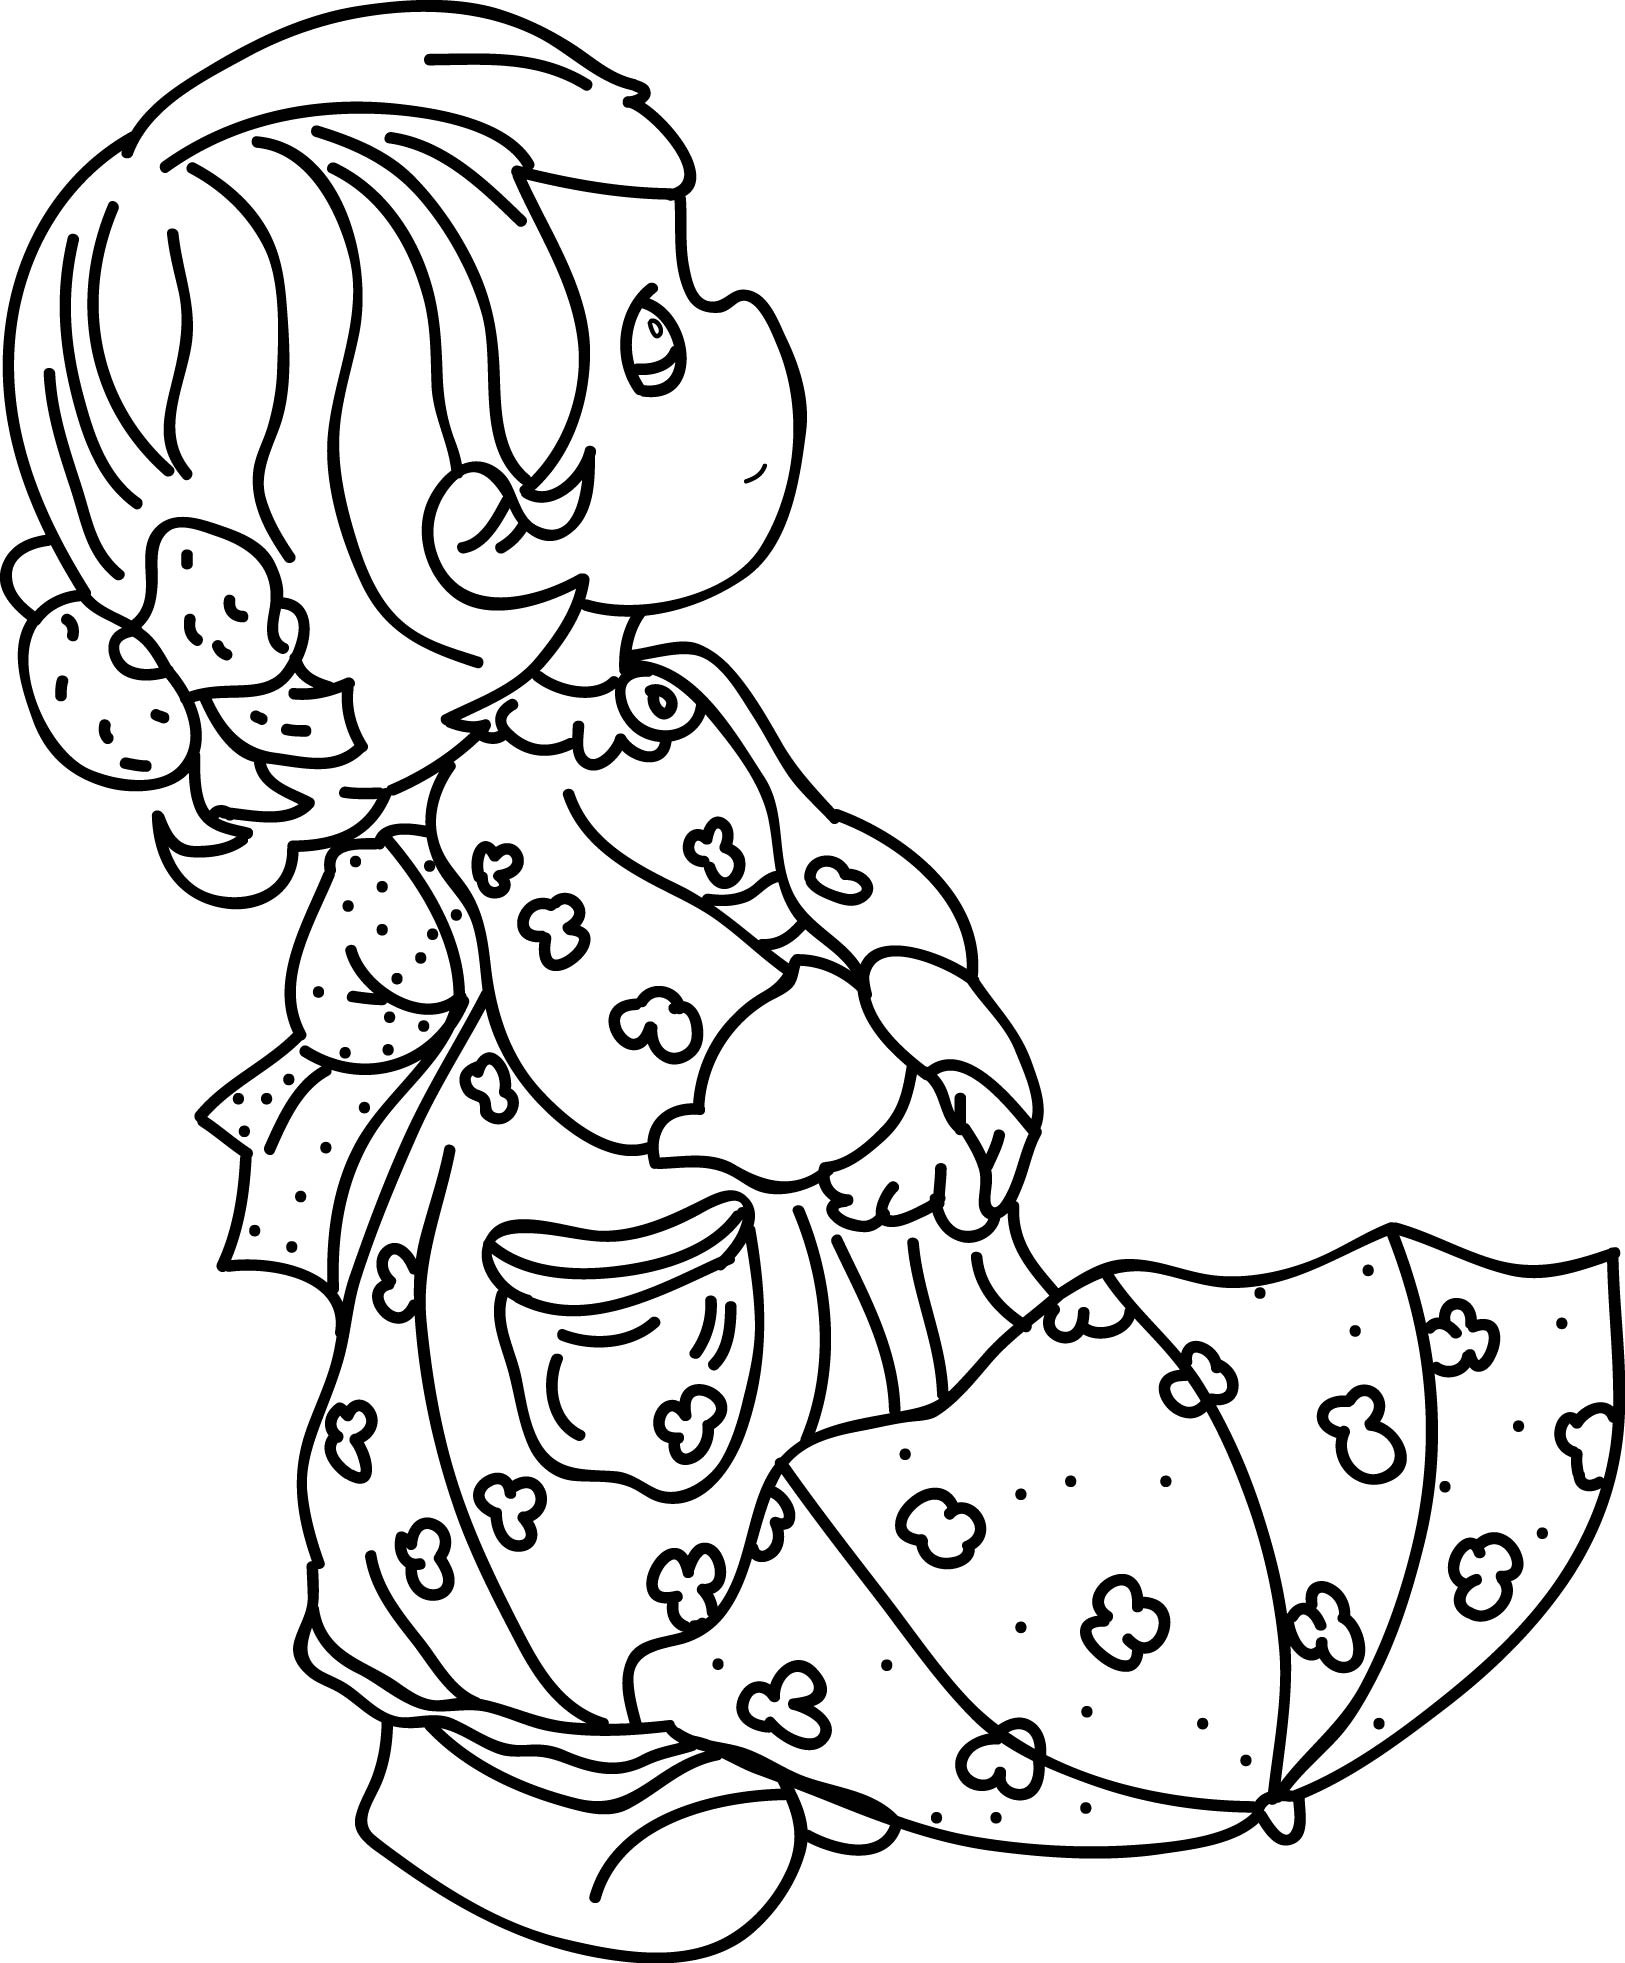 Precious Moments Baby Coloring Pages The Best Precious Moments Easter Coloring Pages Home Inspiration